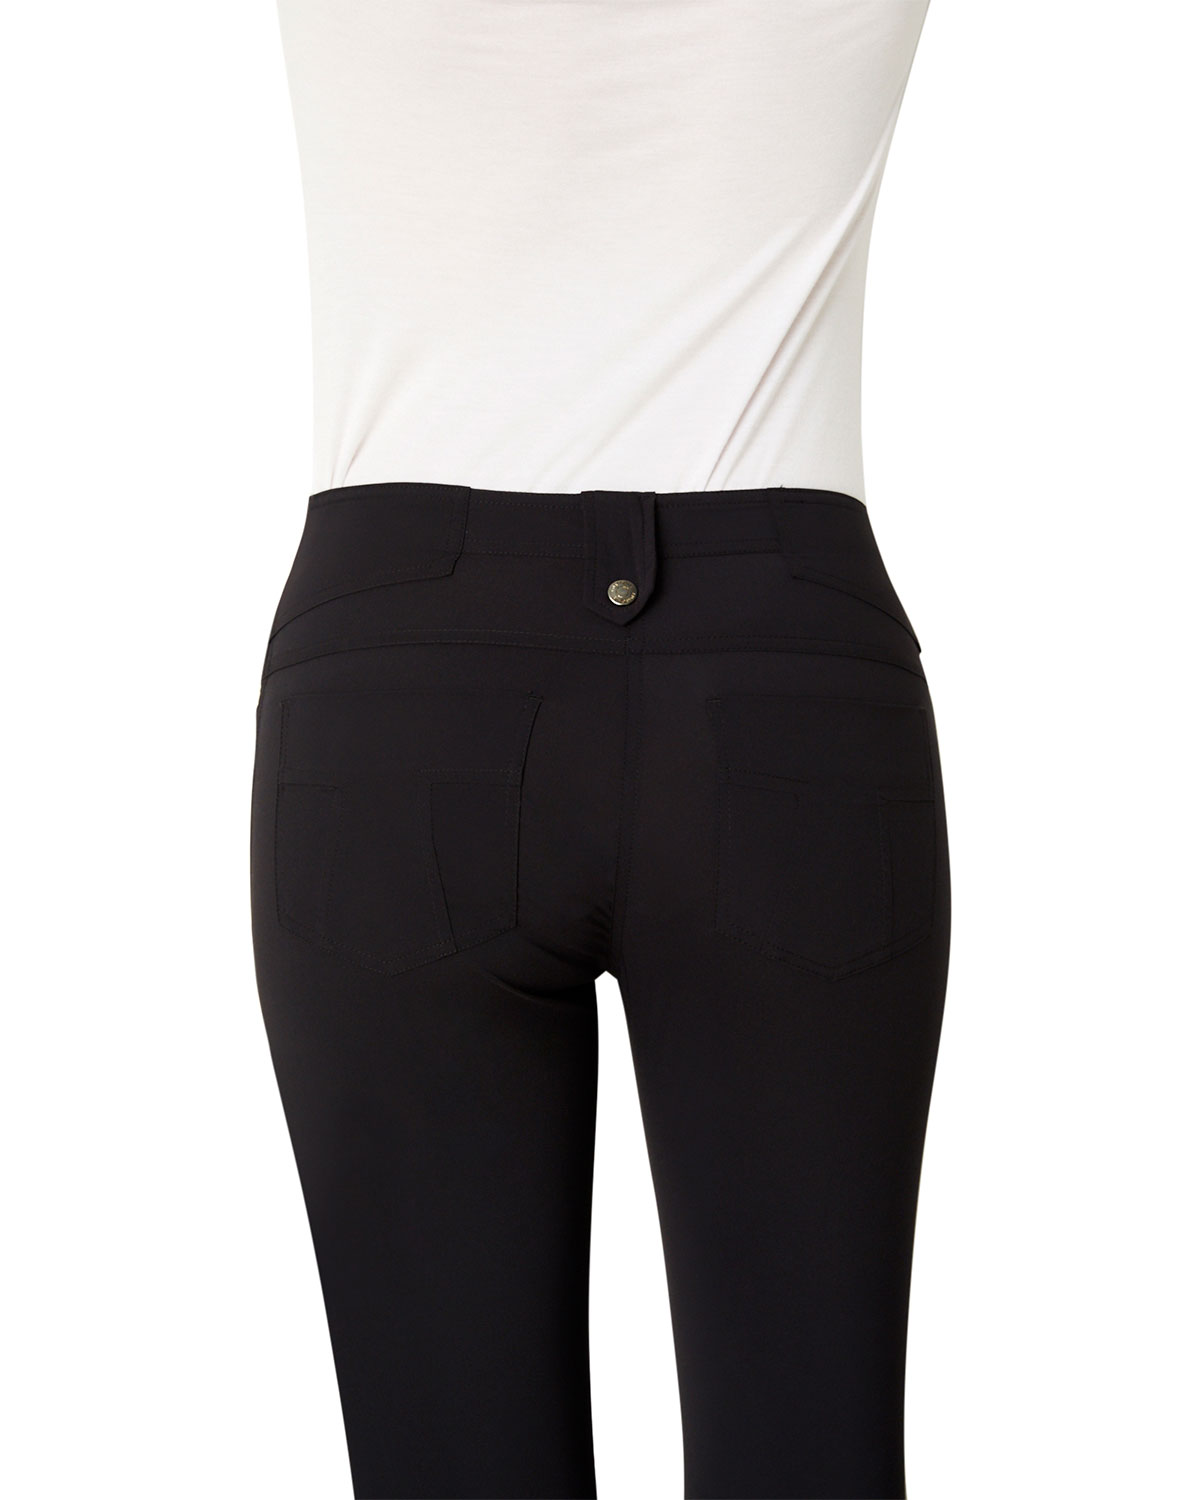 Anatomie Skyler Five-Pocket High-Rise Pants | Neiman Marcus